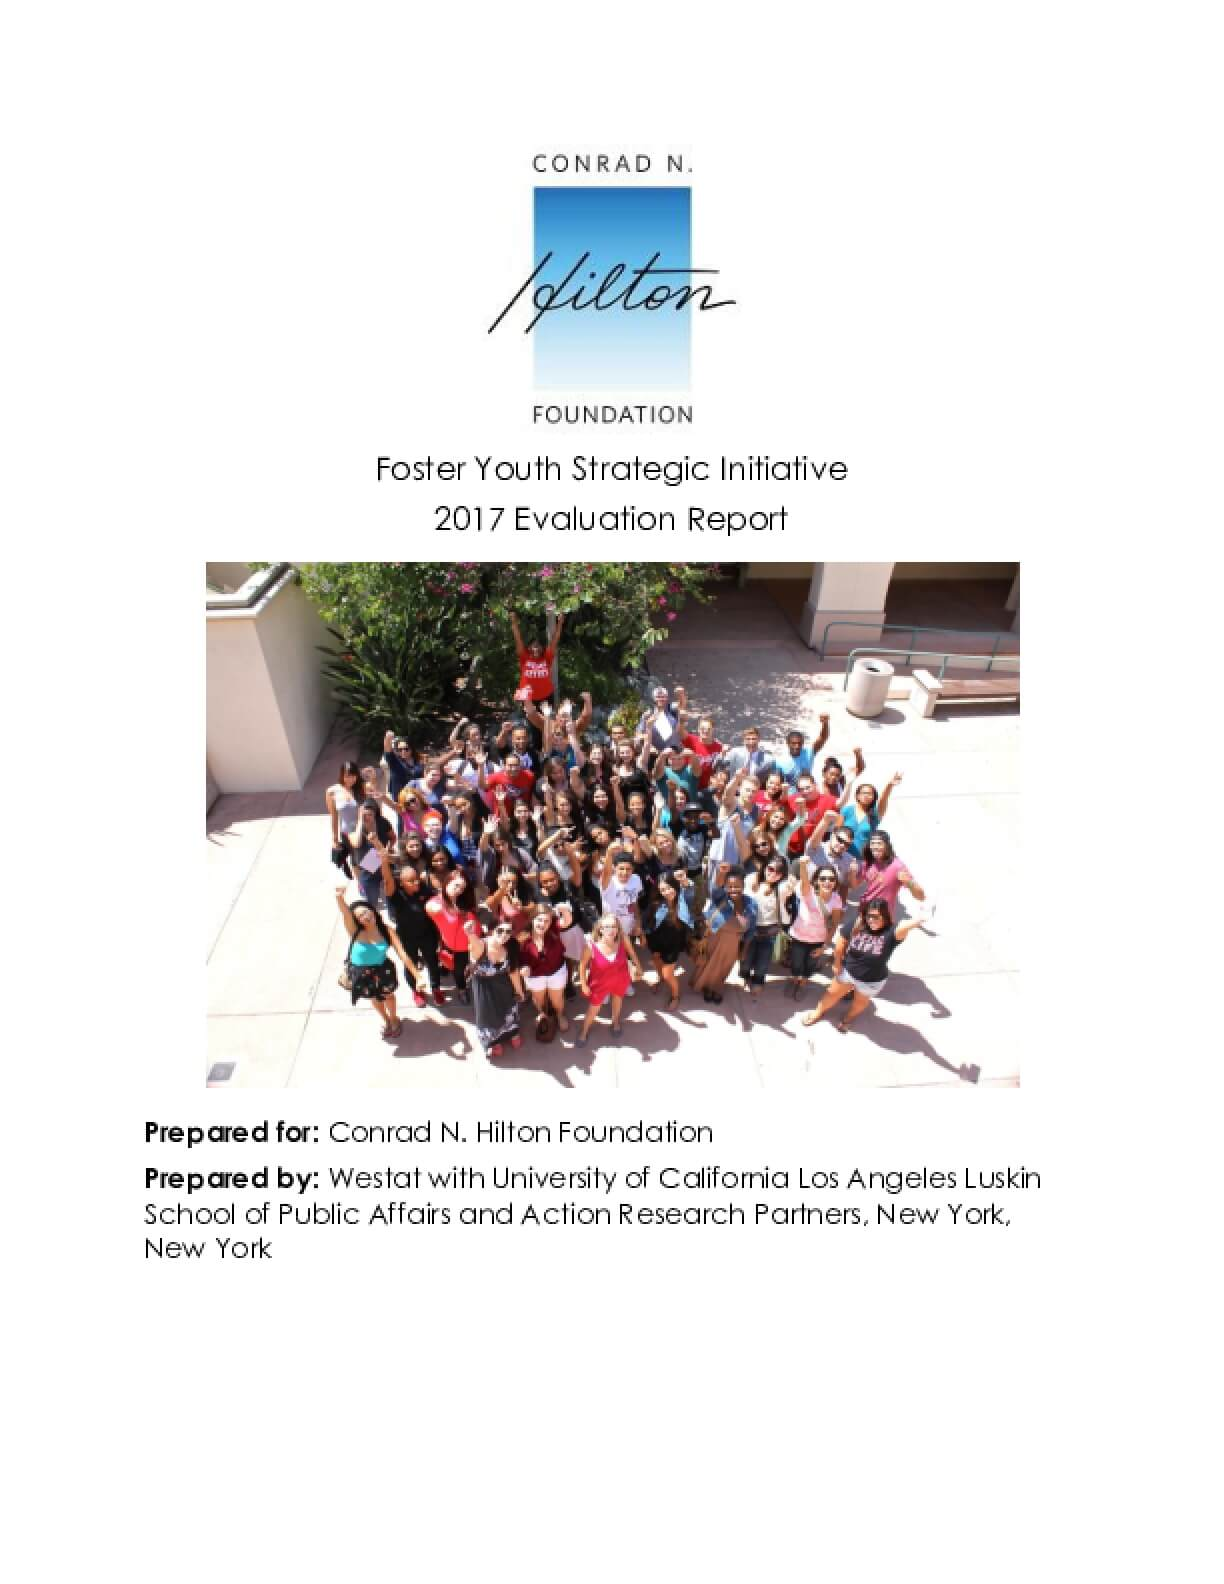 Foster Youth Strategic Initiative: 2017 Evaluation Report